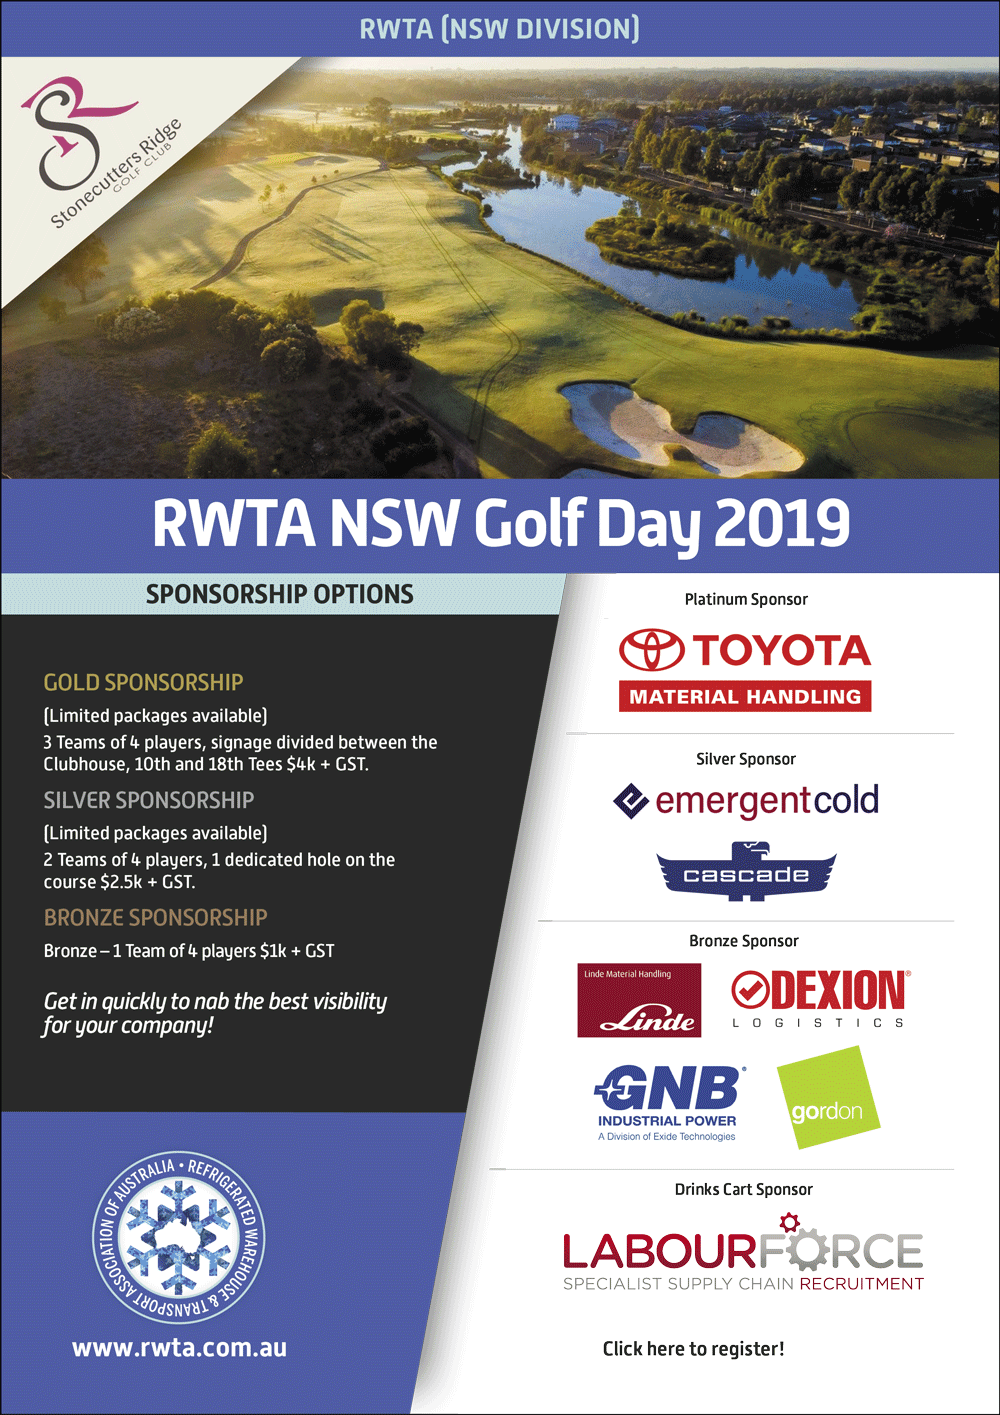 12539_RWTA_NSW-Golf-Sponsor_F.png